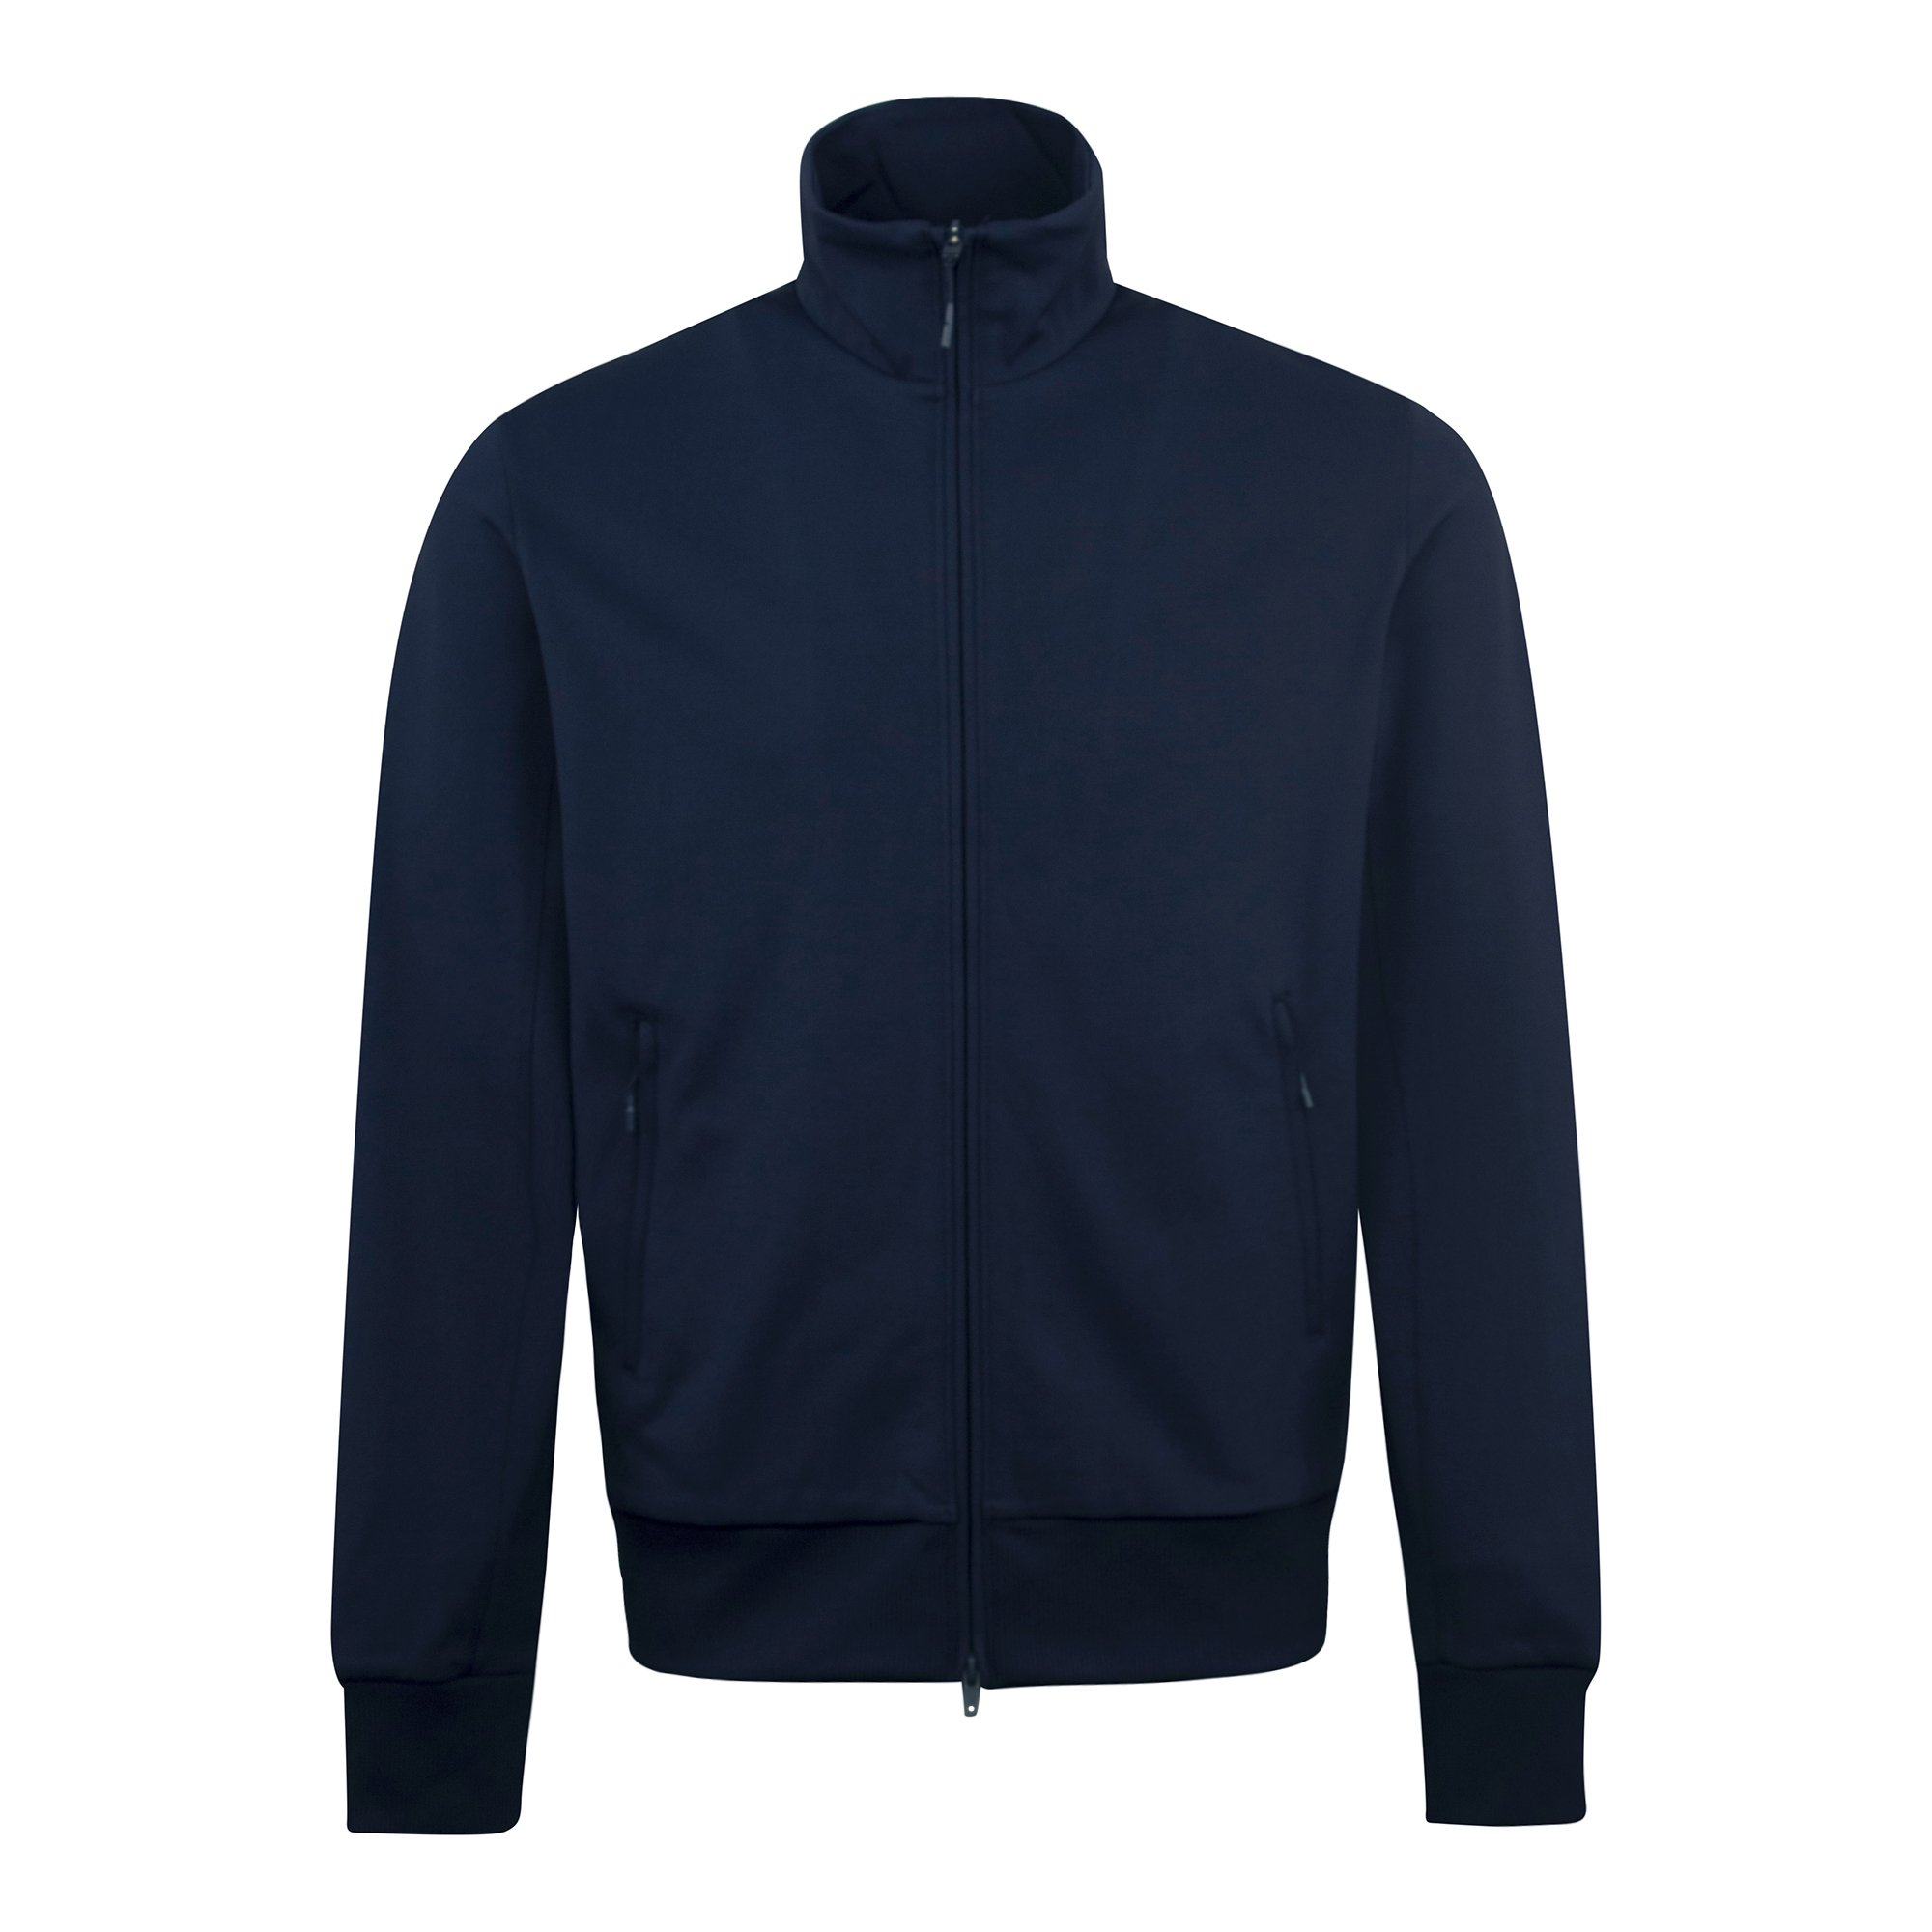 Y-3 Sweaters ADIDAS Y-3 CLASSIC TRACK TOP NAVY